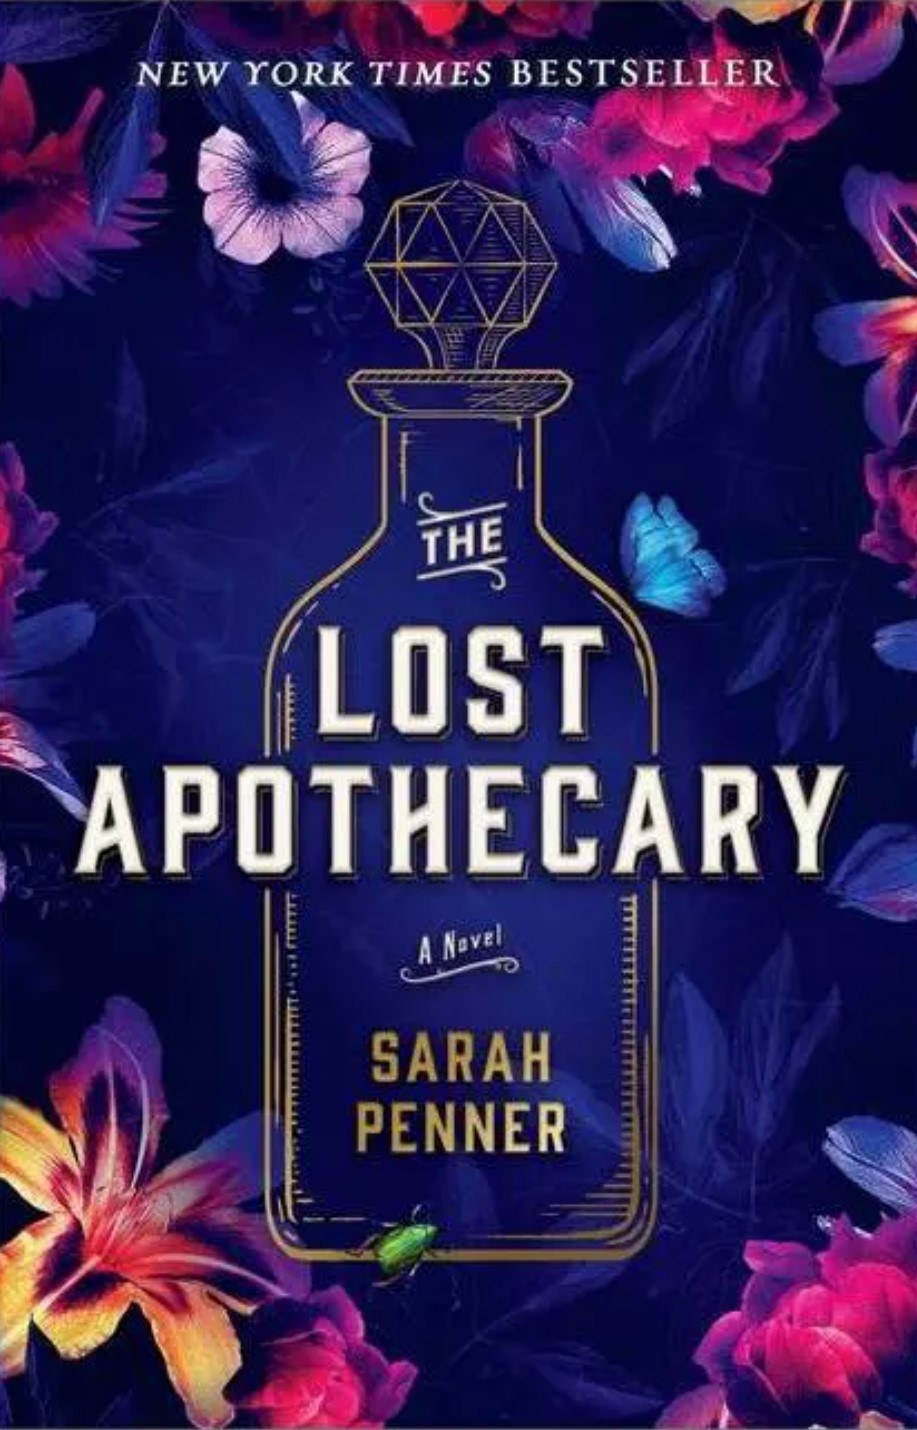 The cover of The Lost Apothecary by Sarah Penner